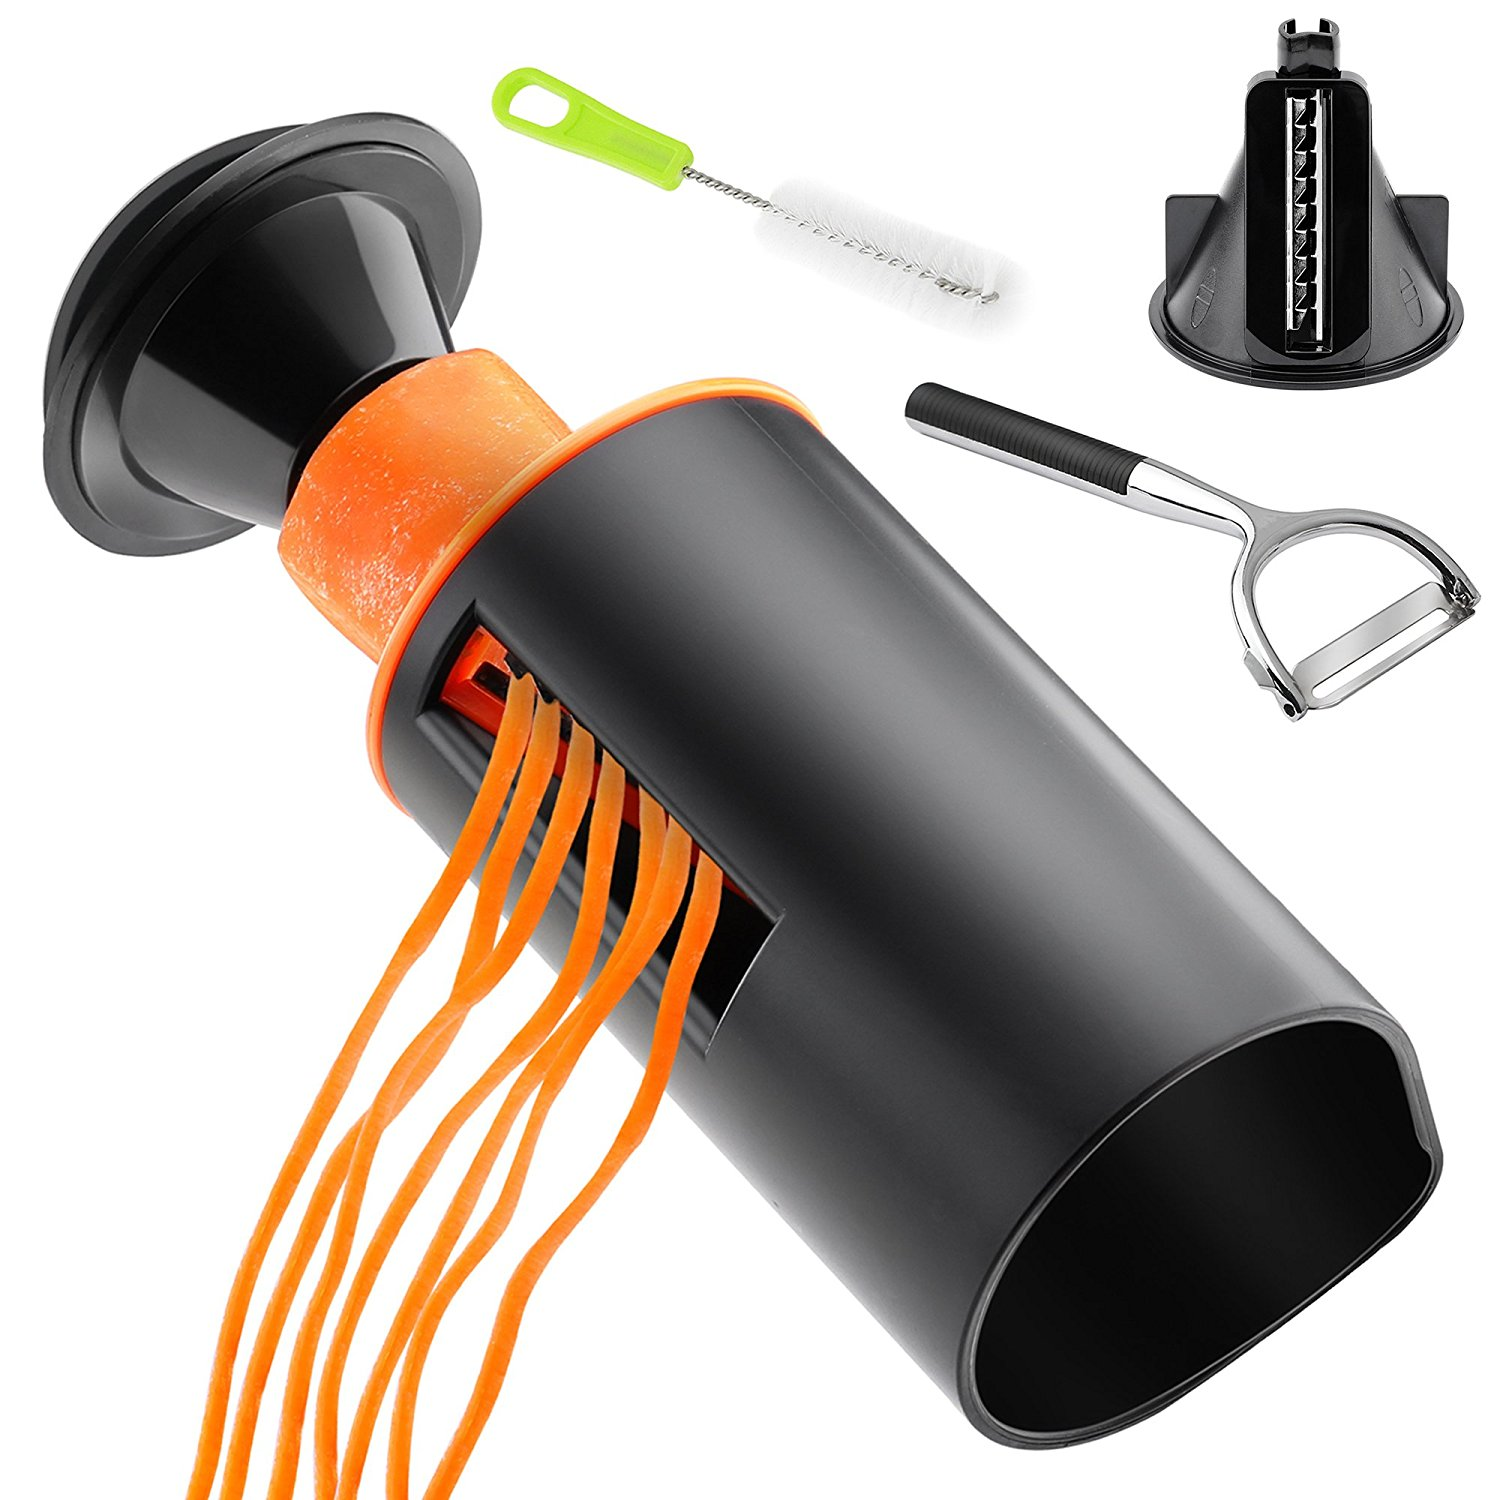 Spiral Slicer Spiralizer Set - Vegetable Spiralizer & Cutter - Zucchini Pasta Noodle Spaghetti Maker - Stainless Steel Peeler - Cleaning Brush - Kitchen Tool for Health & Diet Food, Orange & Black